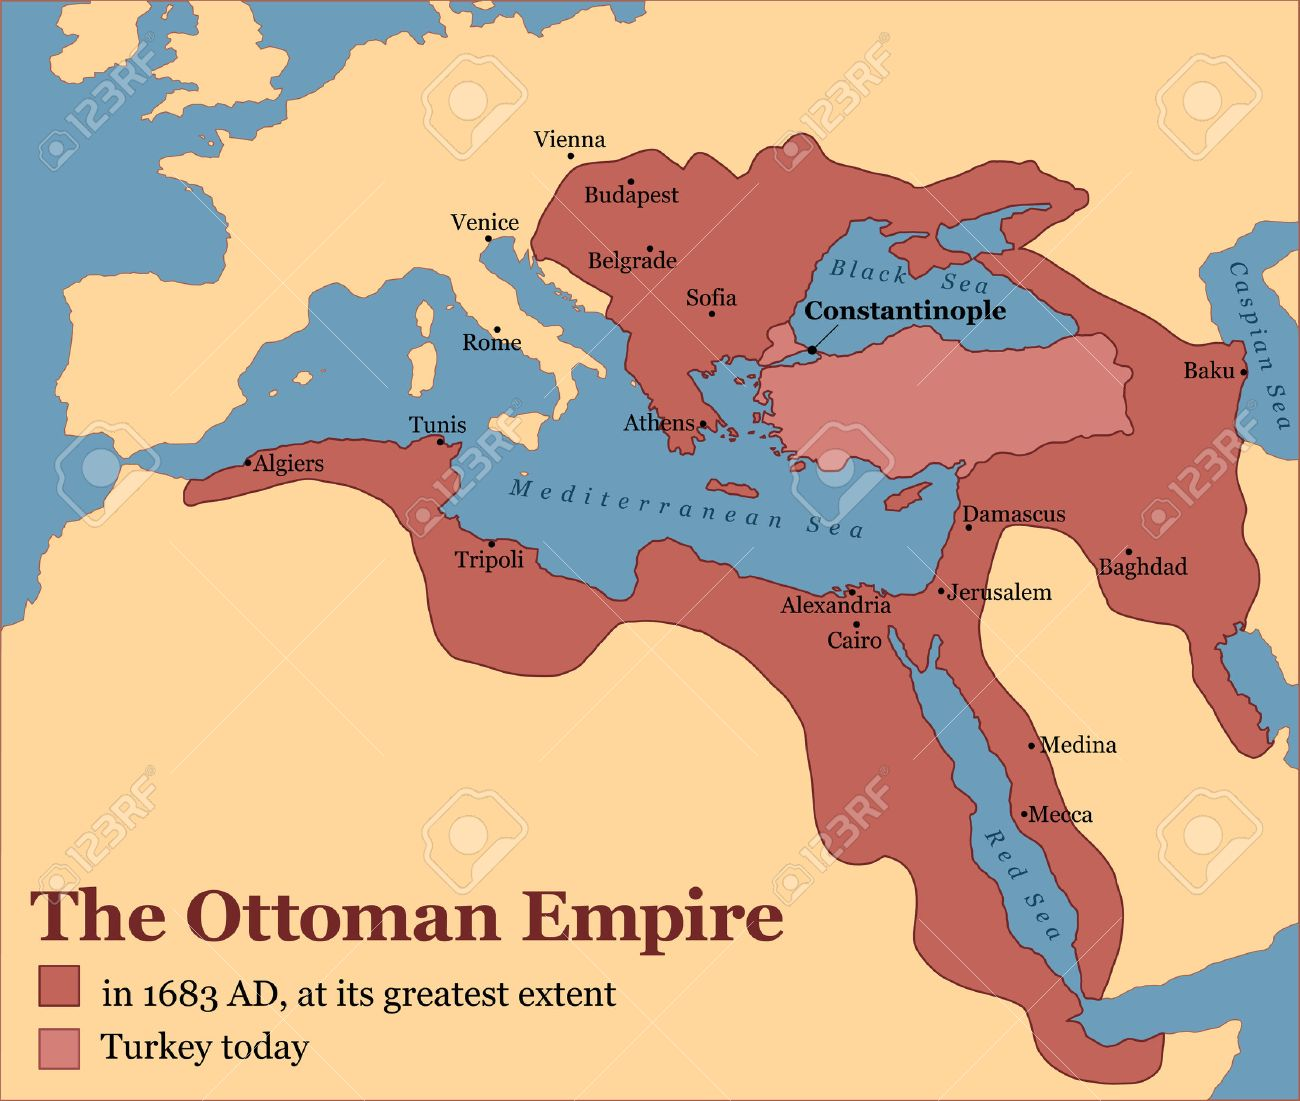 The Ottoman Empire at its greatest extent in 1683, and Turkey today. Vector  illustration